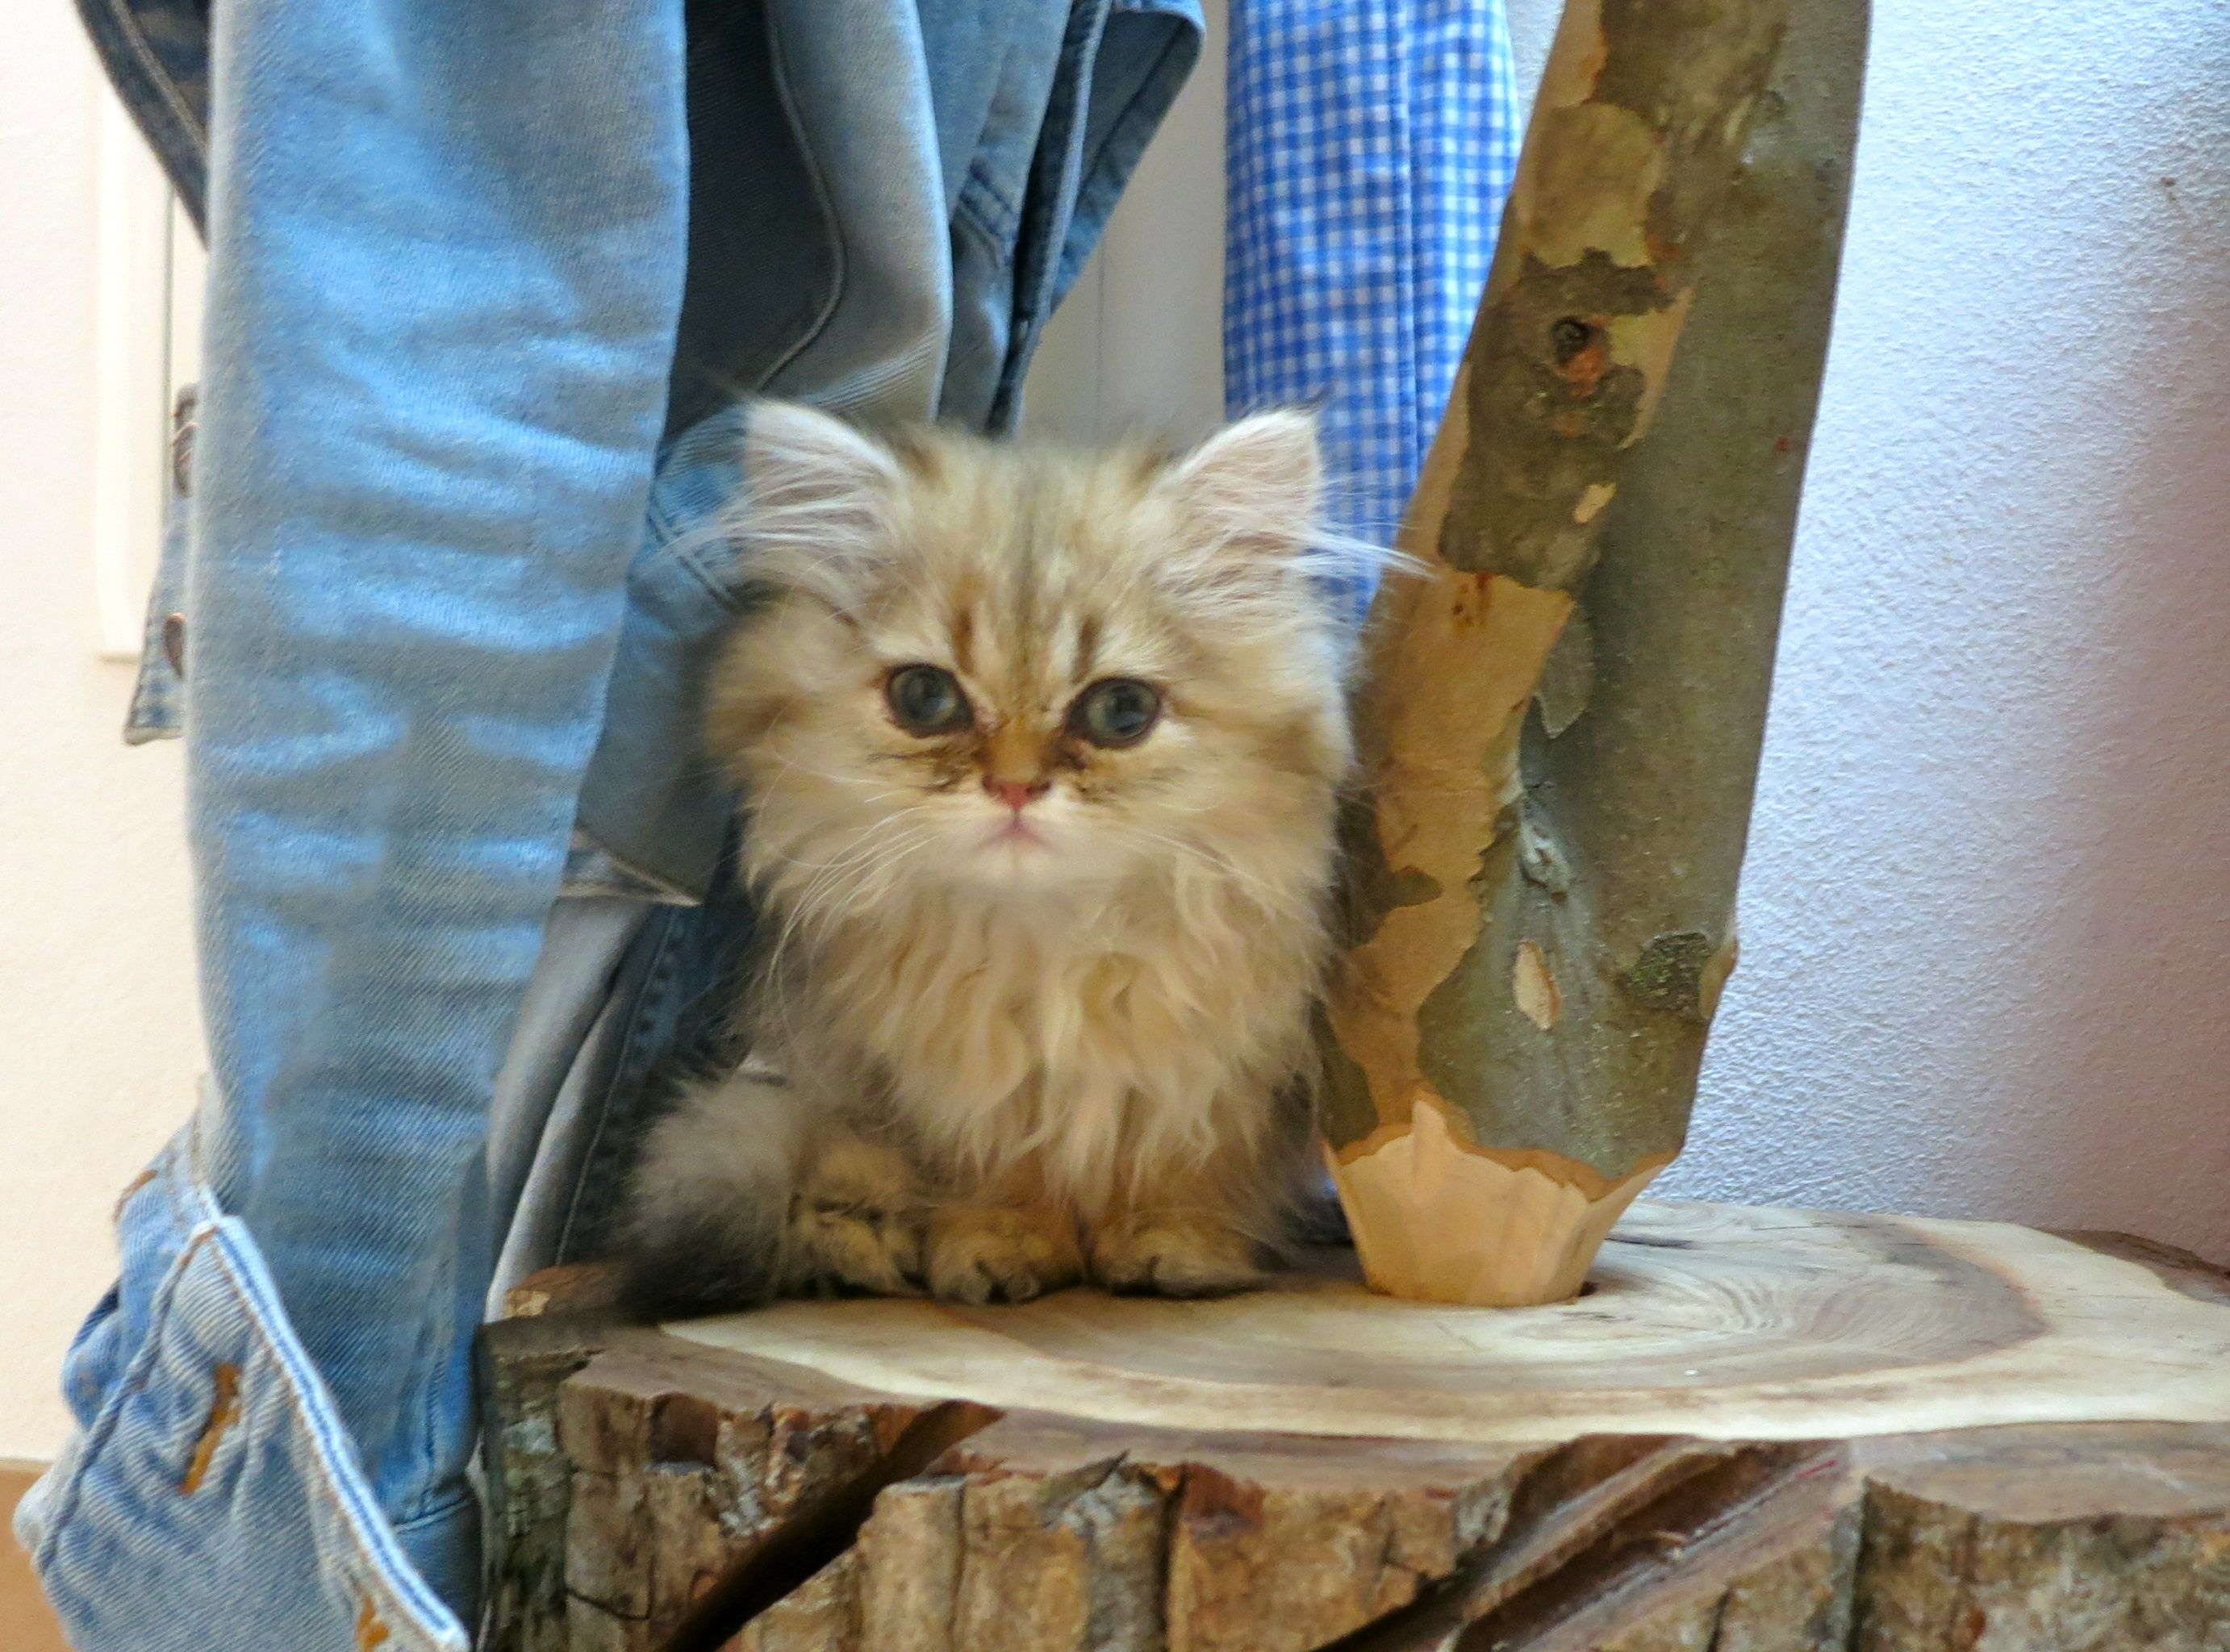 Tips For New Kitten Care Feeding Litter Box Safe Room Cat Introductions Kitten Care Cat Care Cats